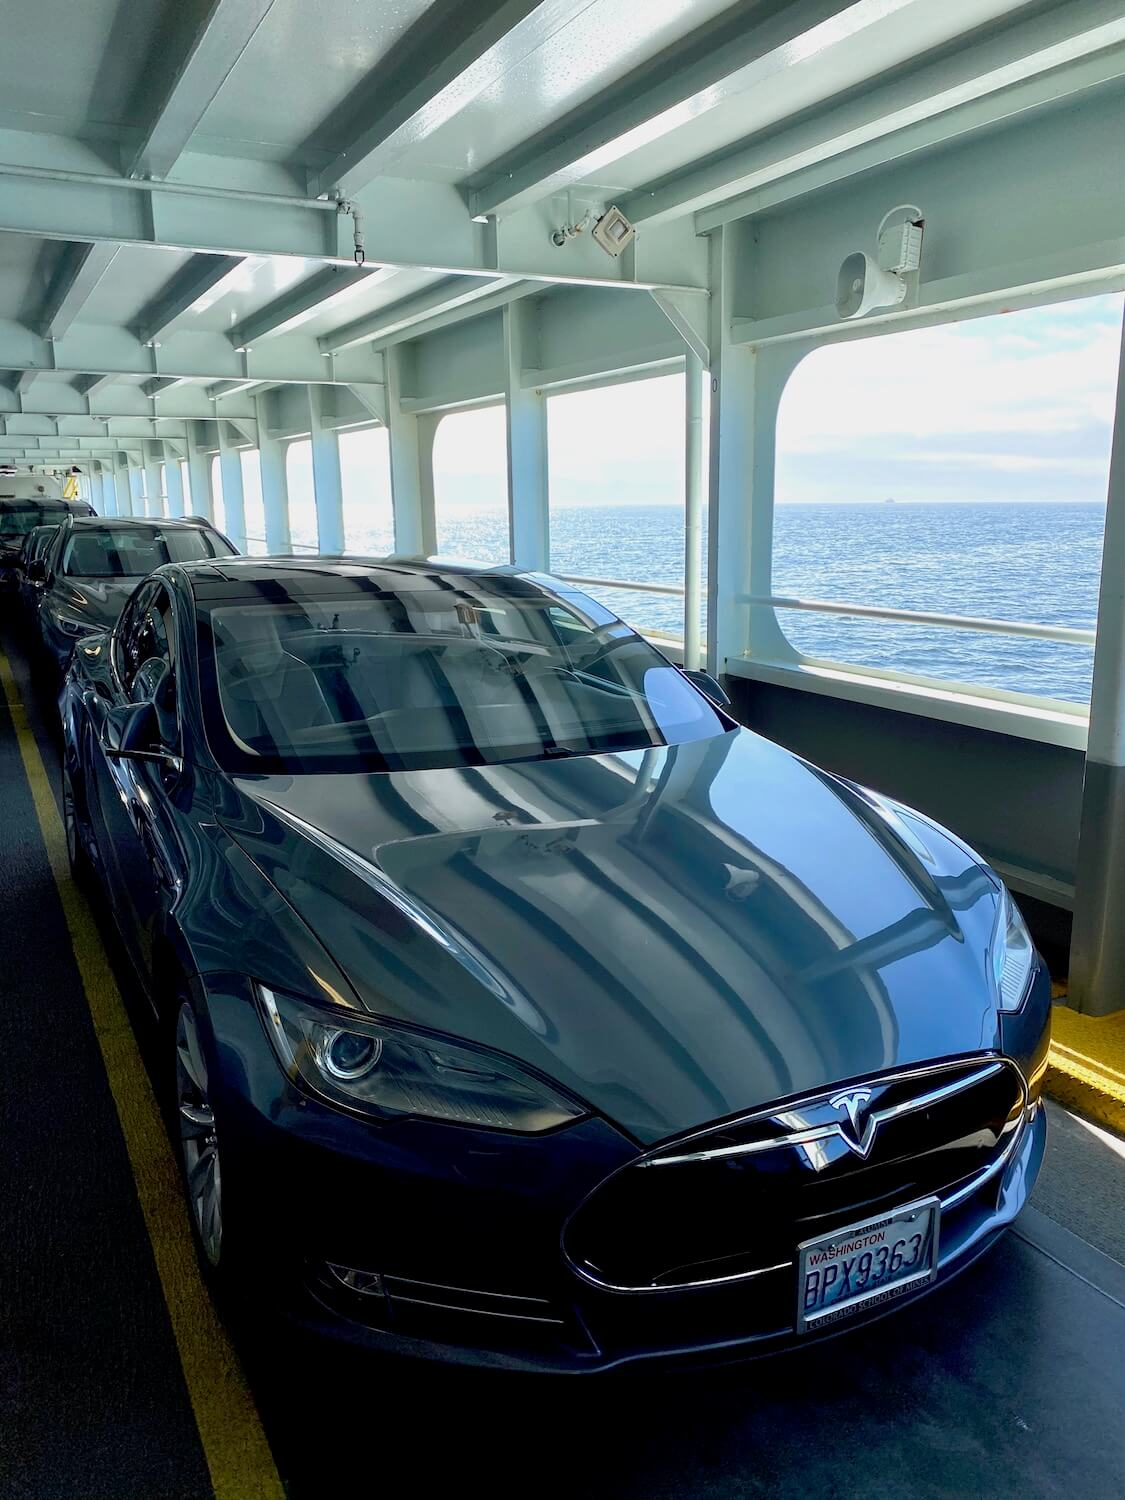 The Tesla beginning a road trip around the Puget Sound, on board a Washington State Ferry.  The car is in line with many others amongst metal beam structures against the flowing water beyond.